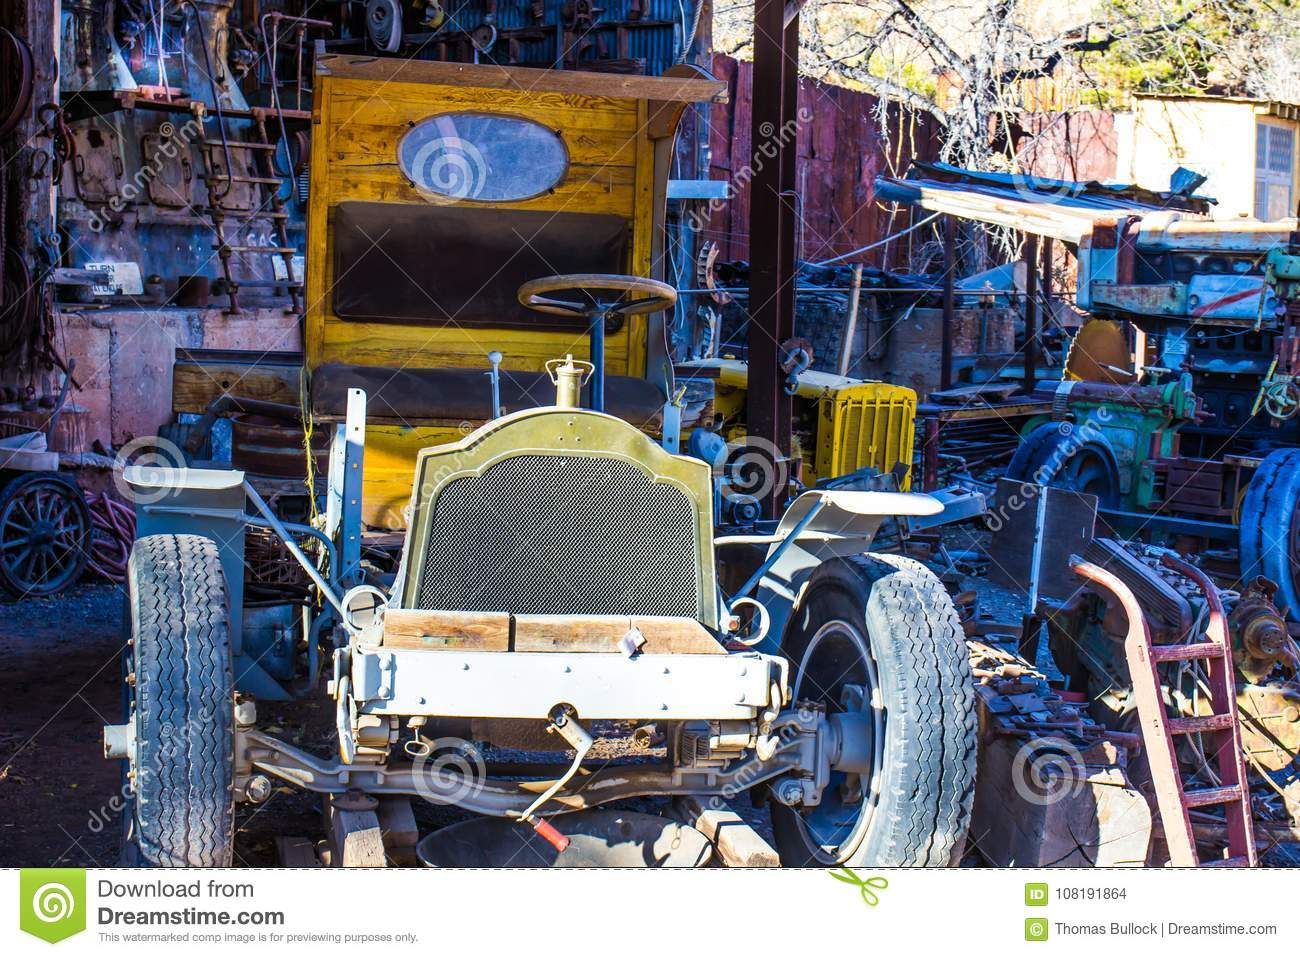 Vintage Auto Scrapped In Salvage Yard Stock Photo - Image of lean ...